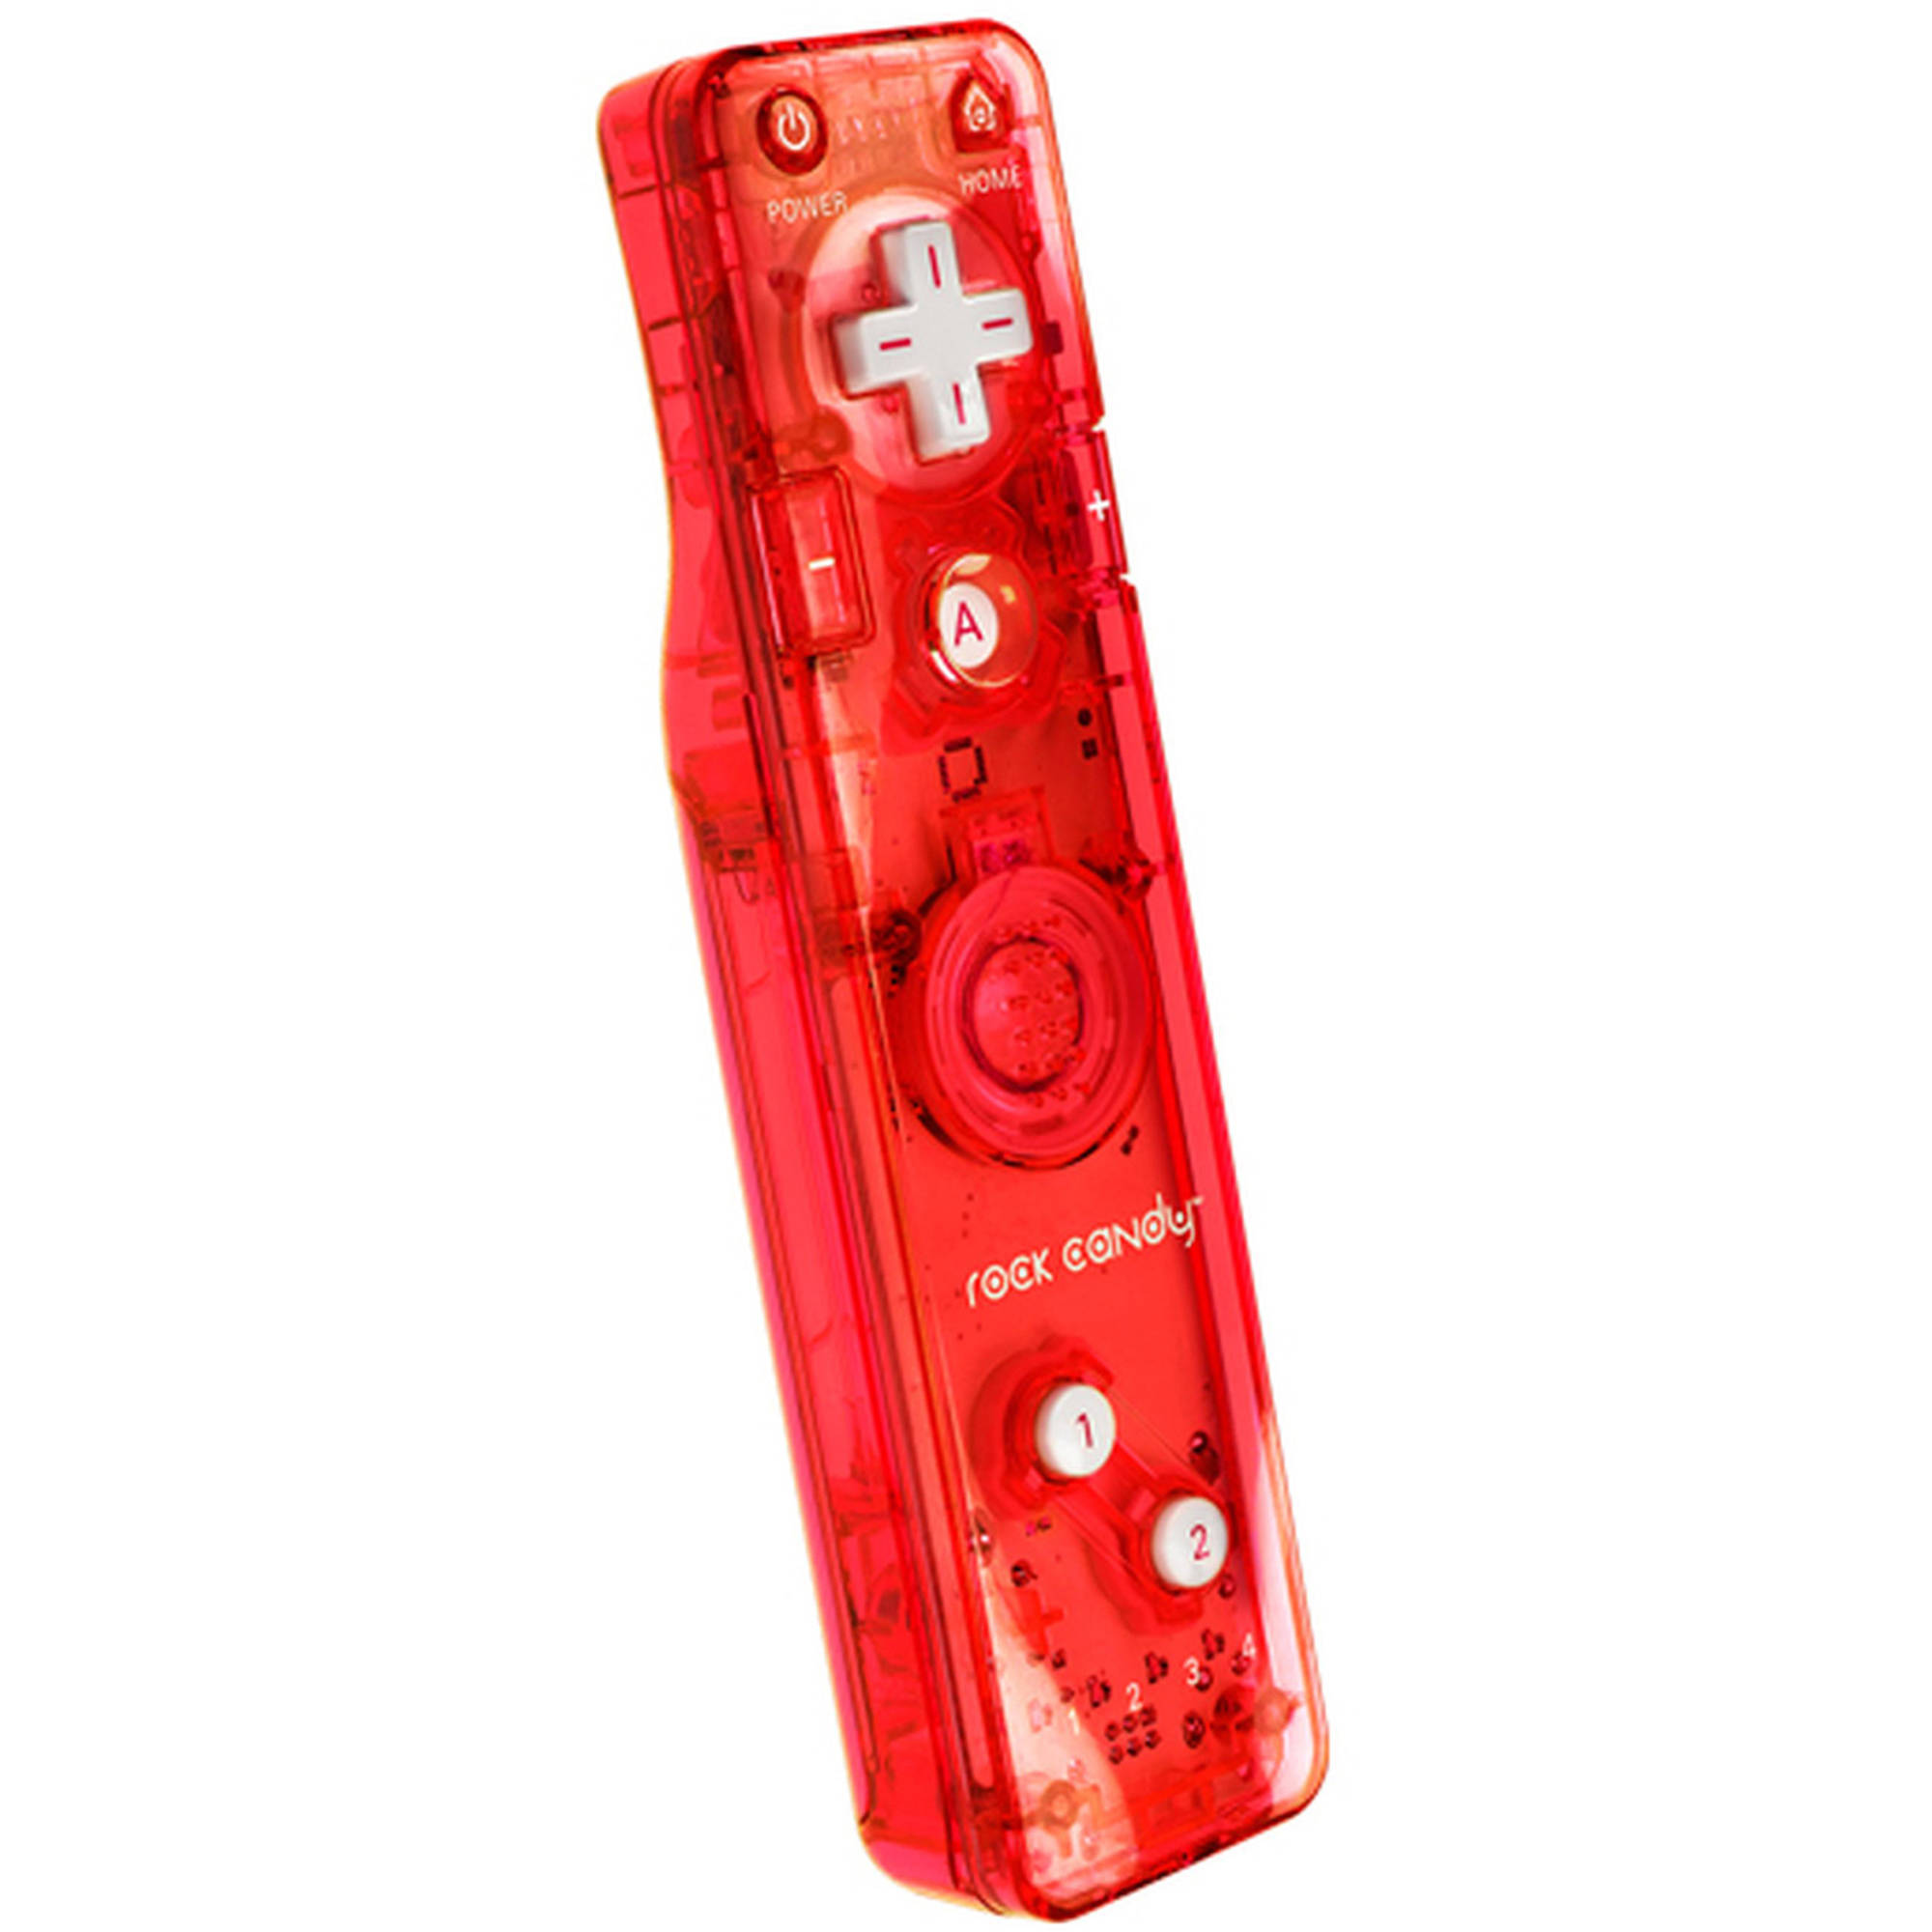 Rock Candy 8560R Gesture Controller, Red (Wii) by PDP